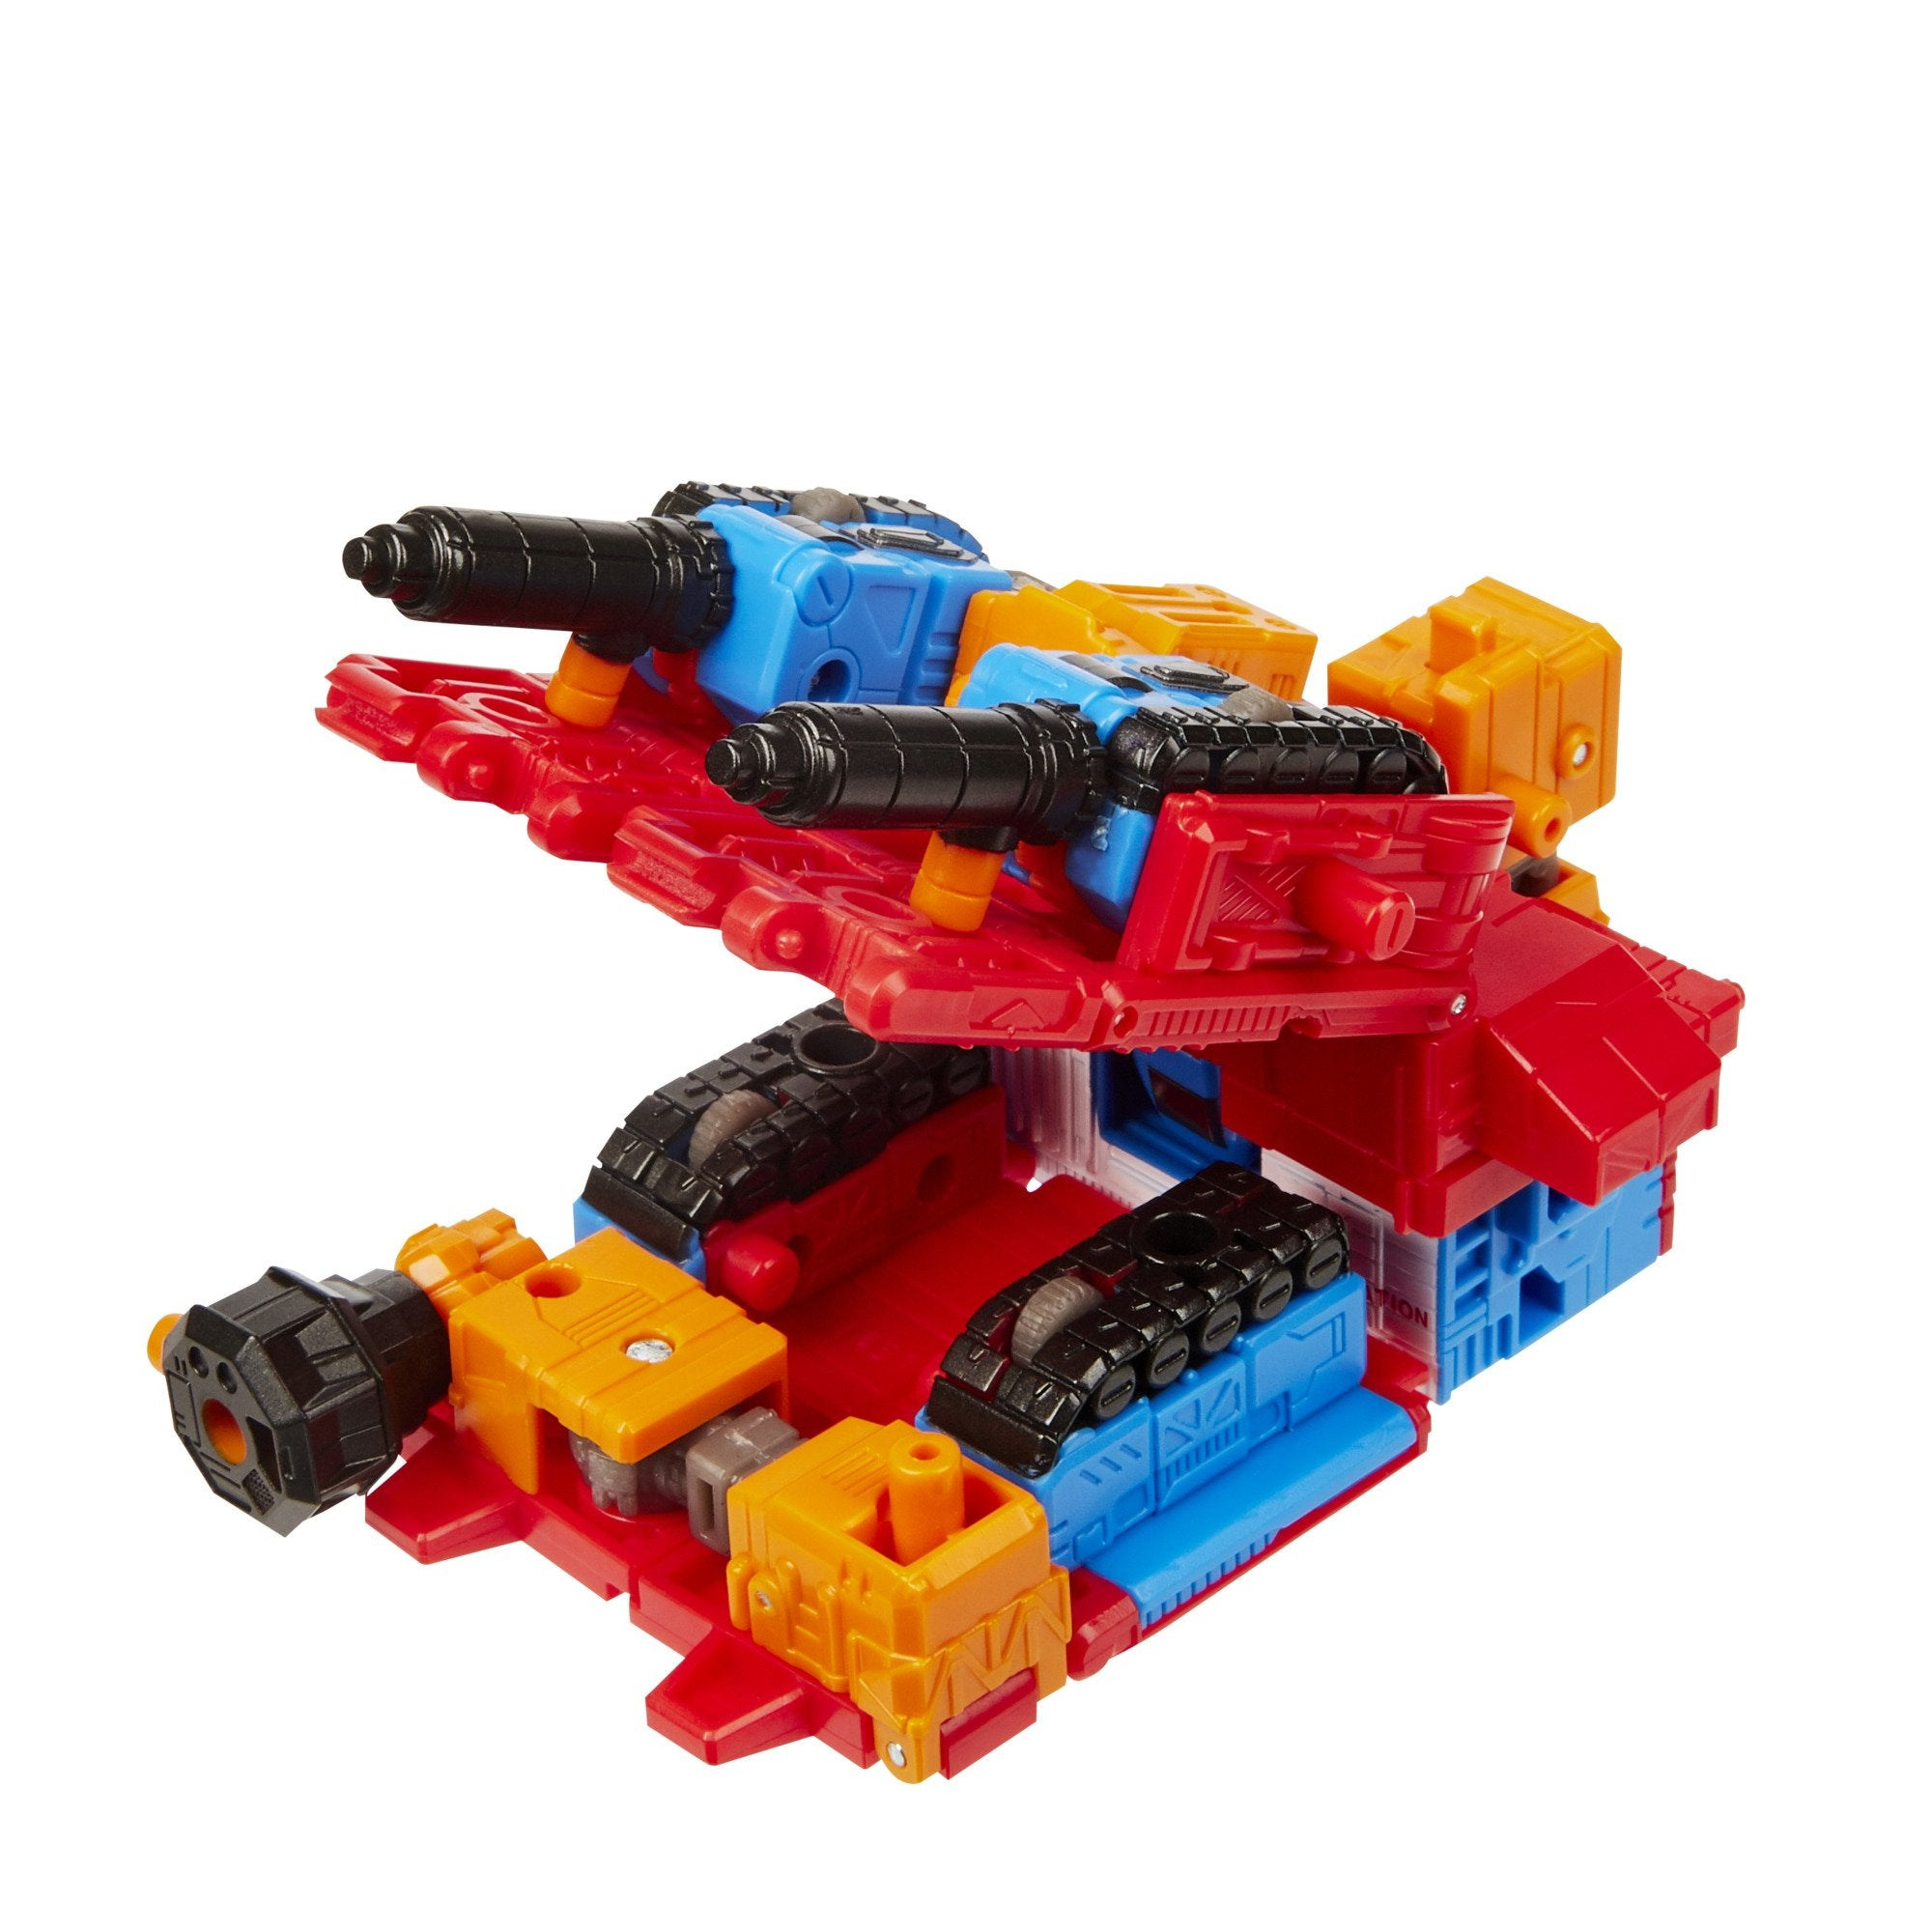 Hasbro - Transformers Generations - Selects Deluxe - Hot House